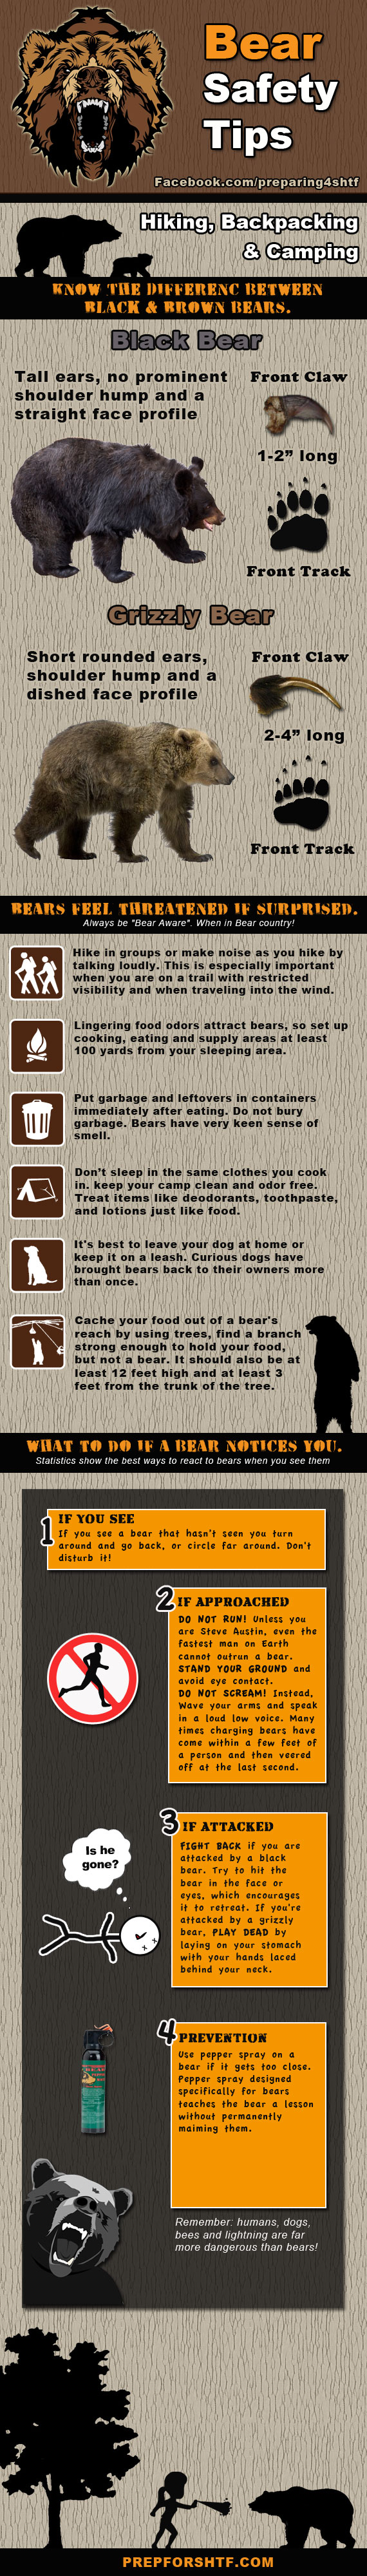 Bear Safety Tips